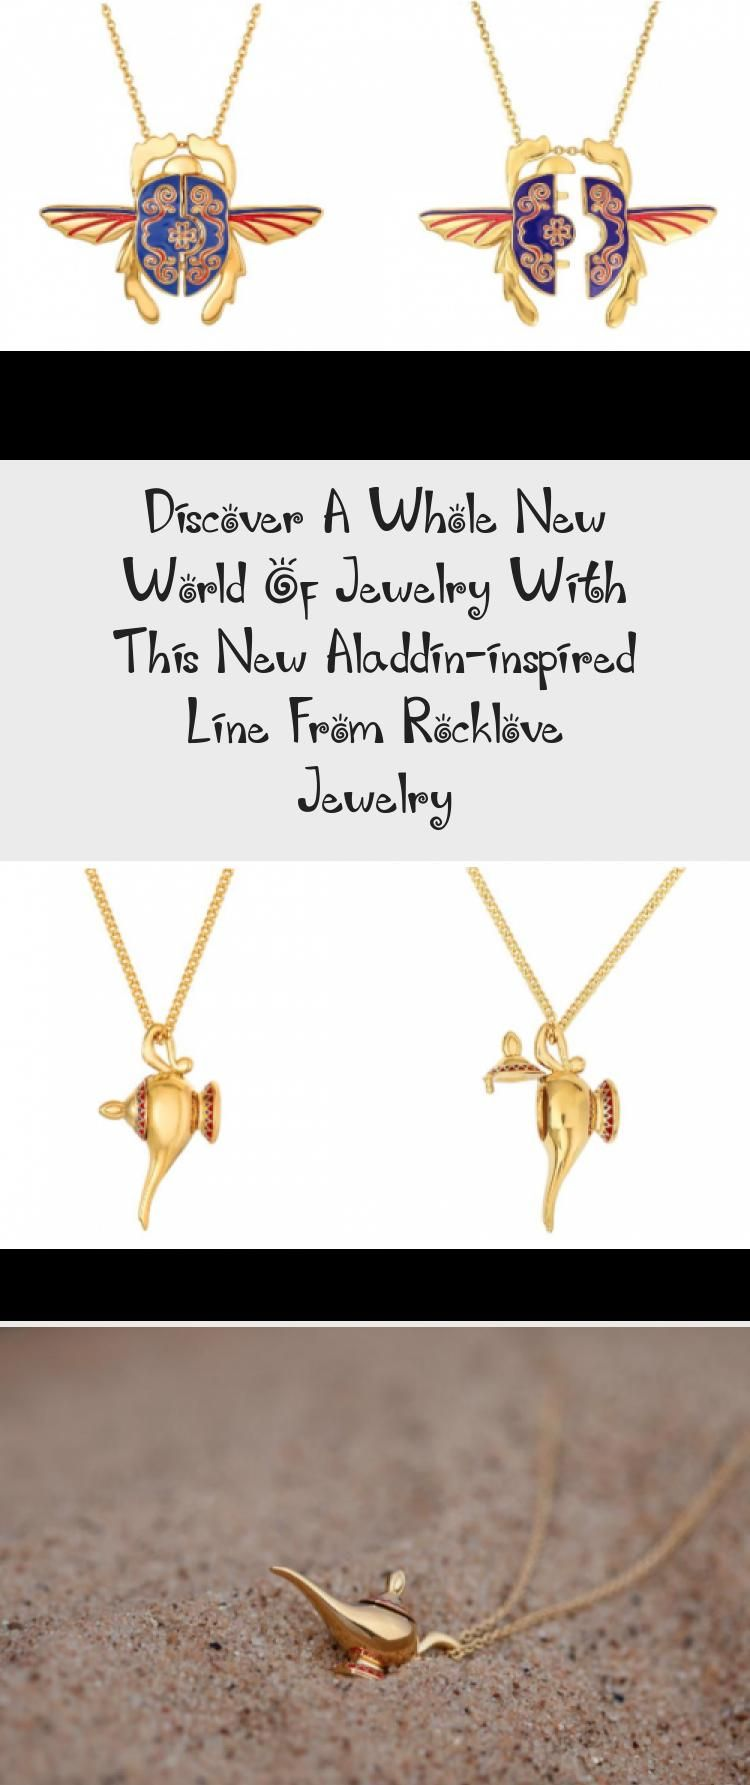 Photo of Discover A Whole New World Of Jewelry With This New Aladdin-inspired Line From Rocklove Jewelry – Jewelrys